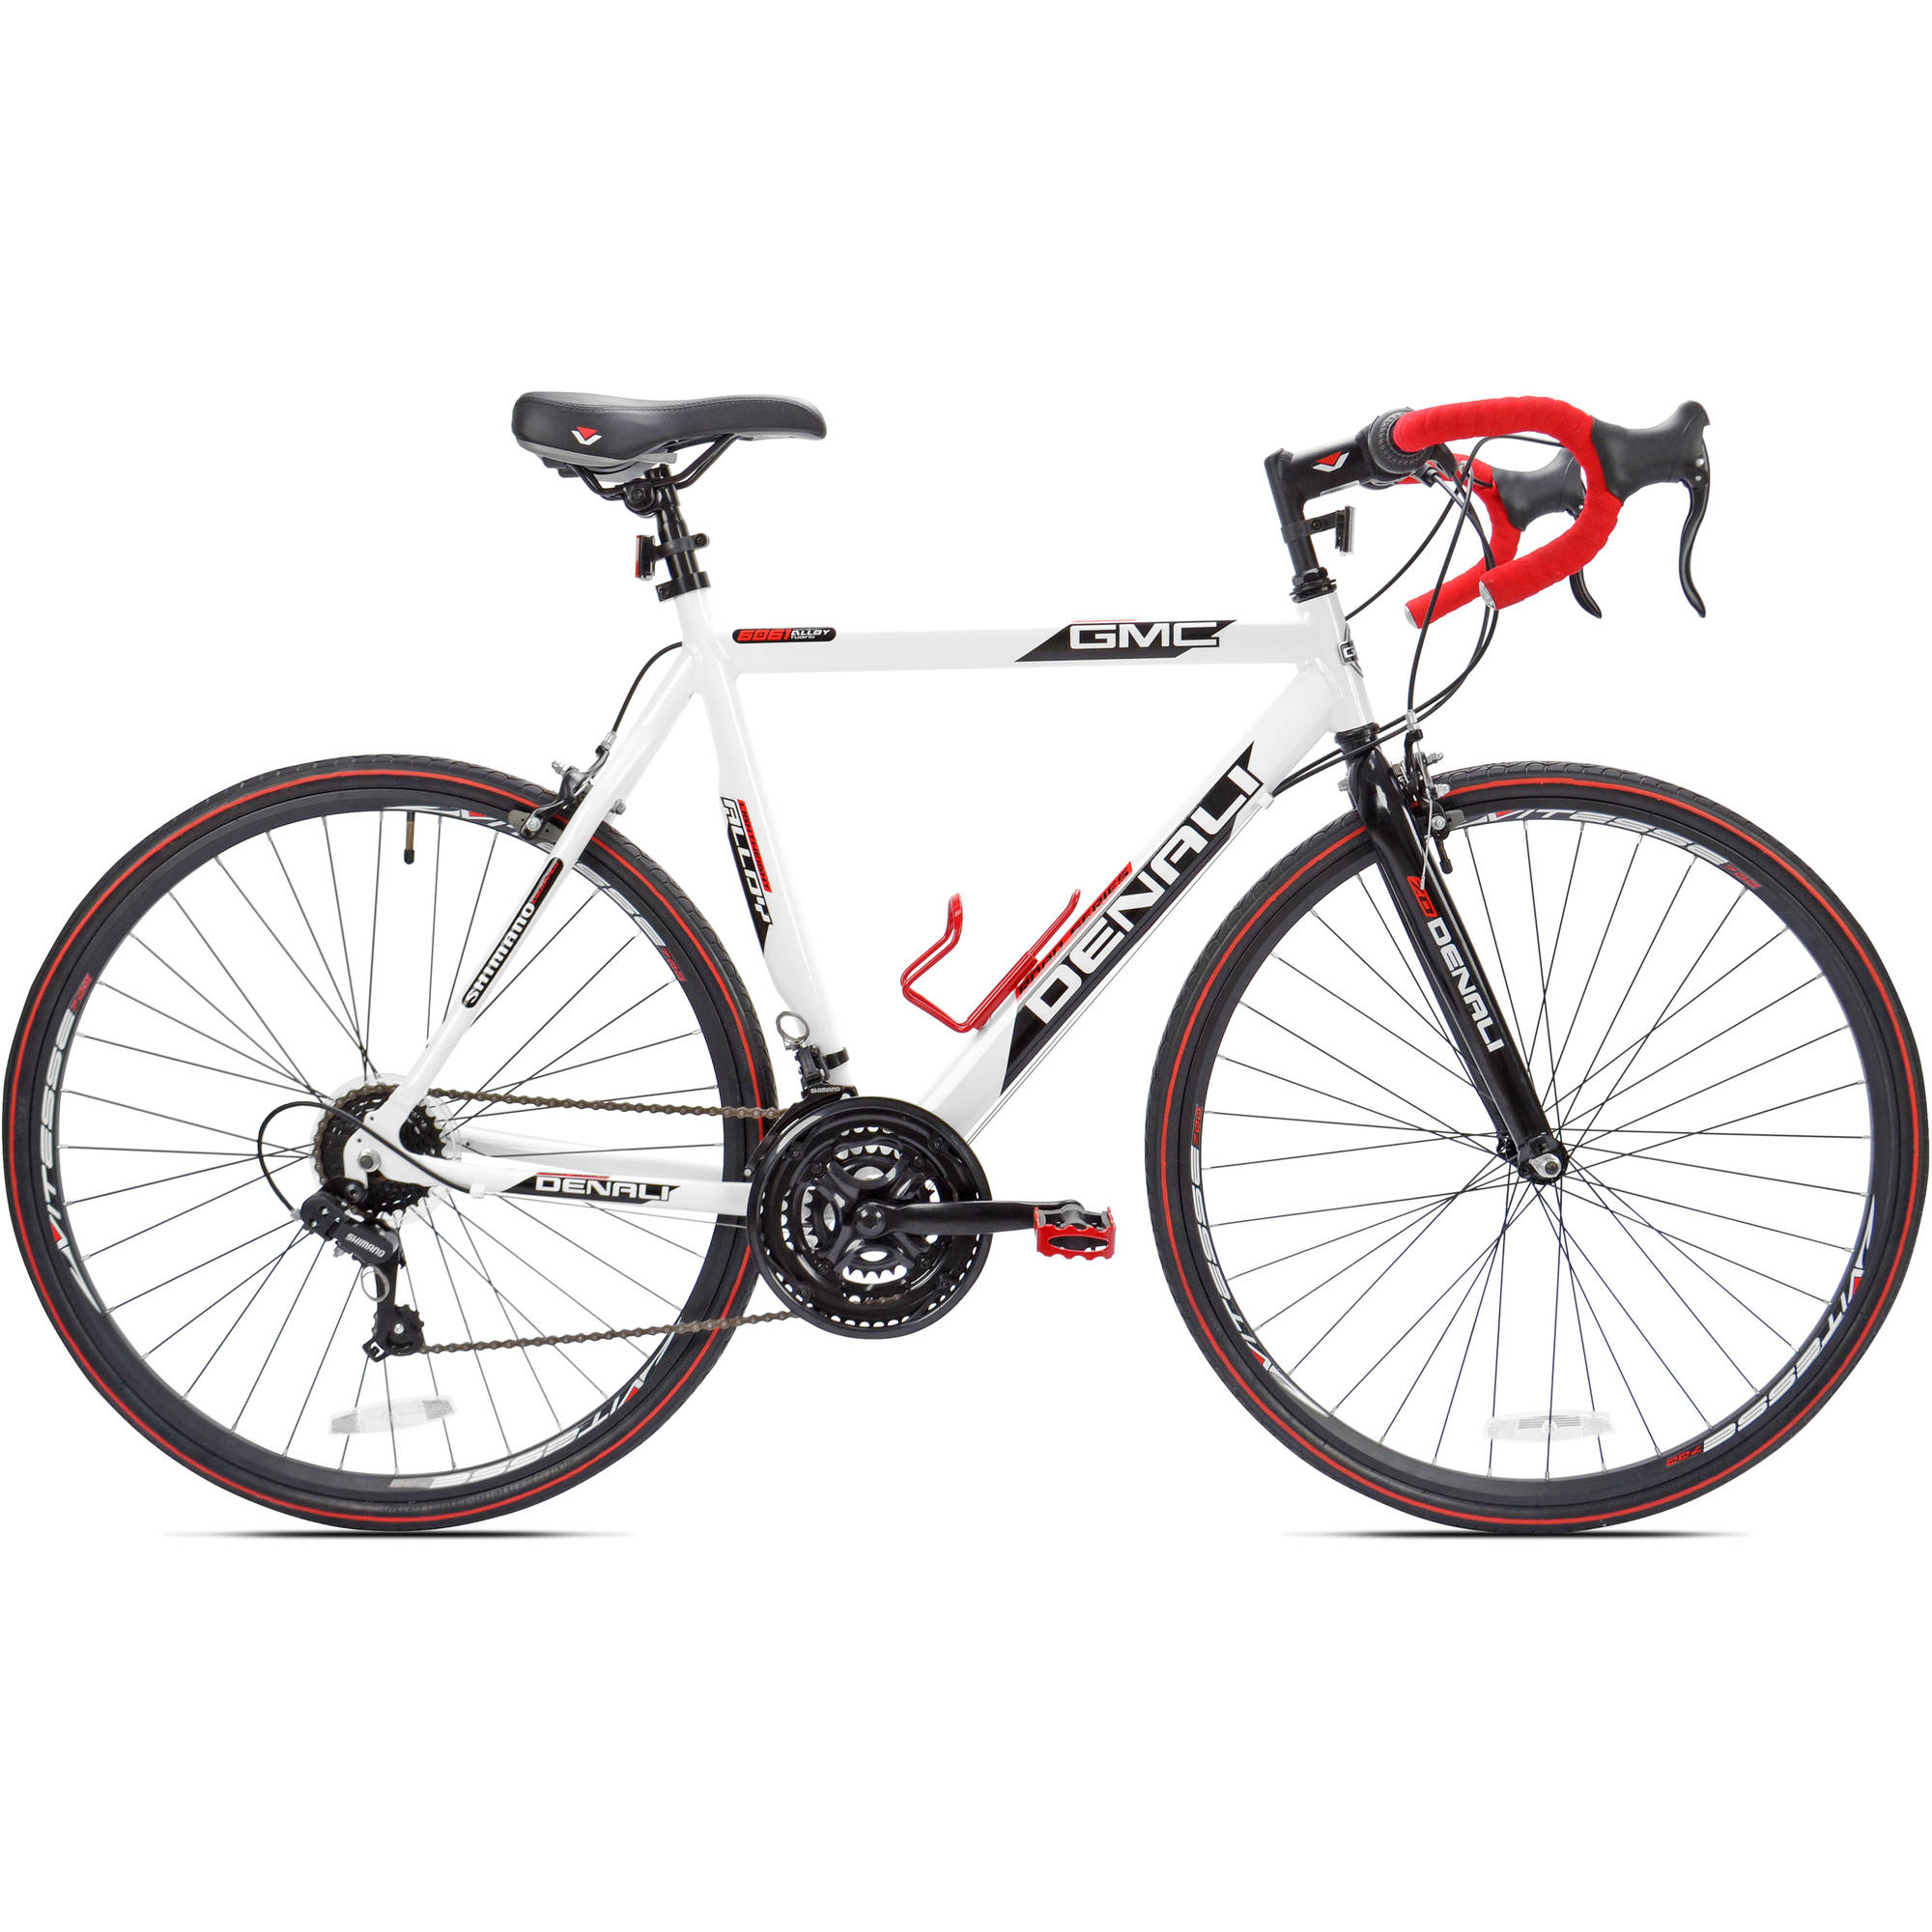 "25"" 700c GMC Denali Men's Bike, White/Red"